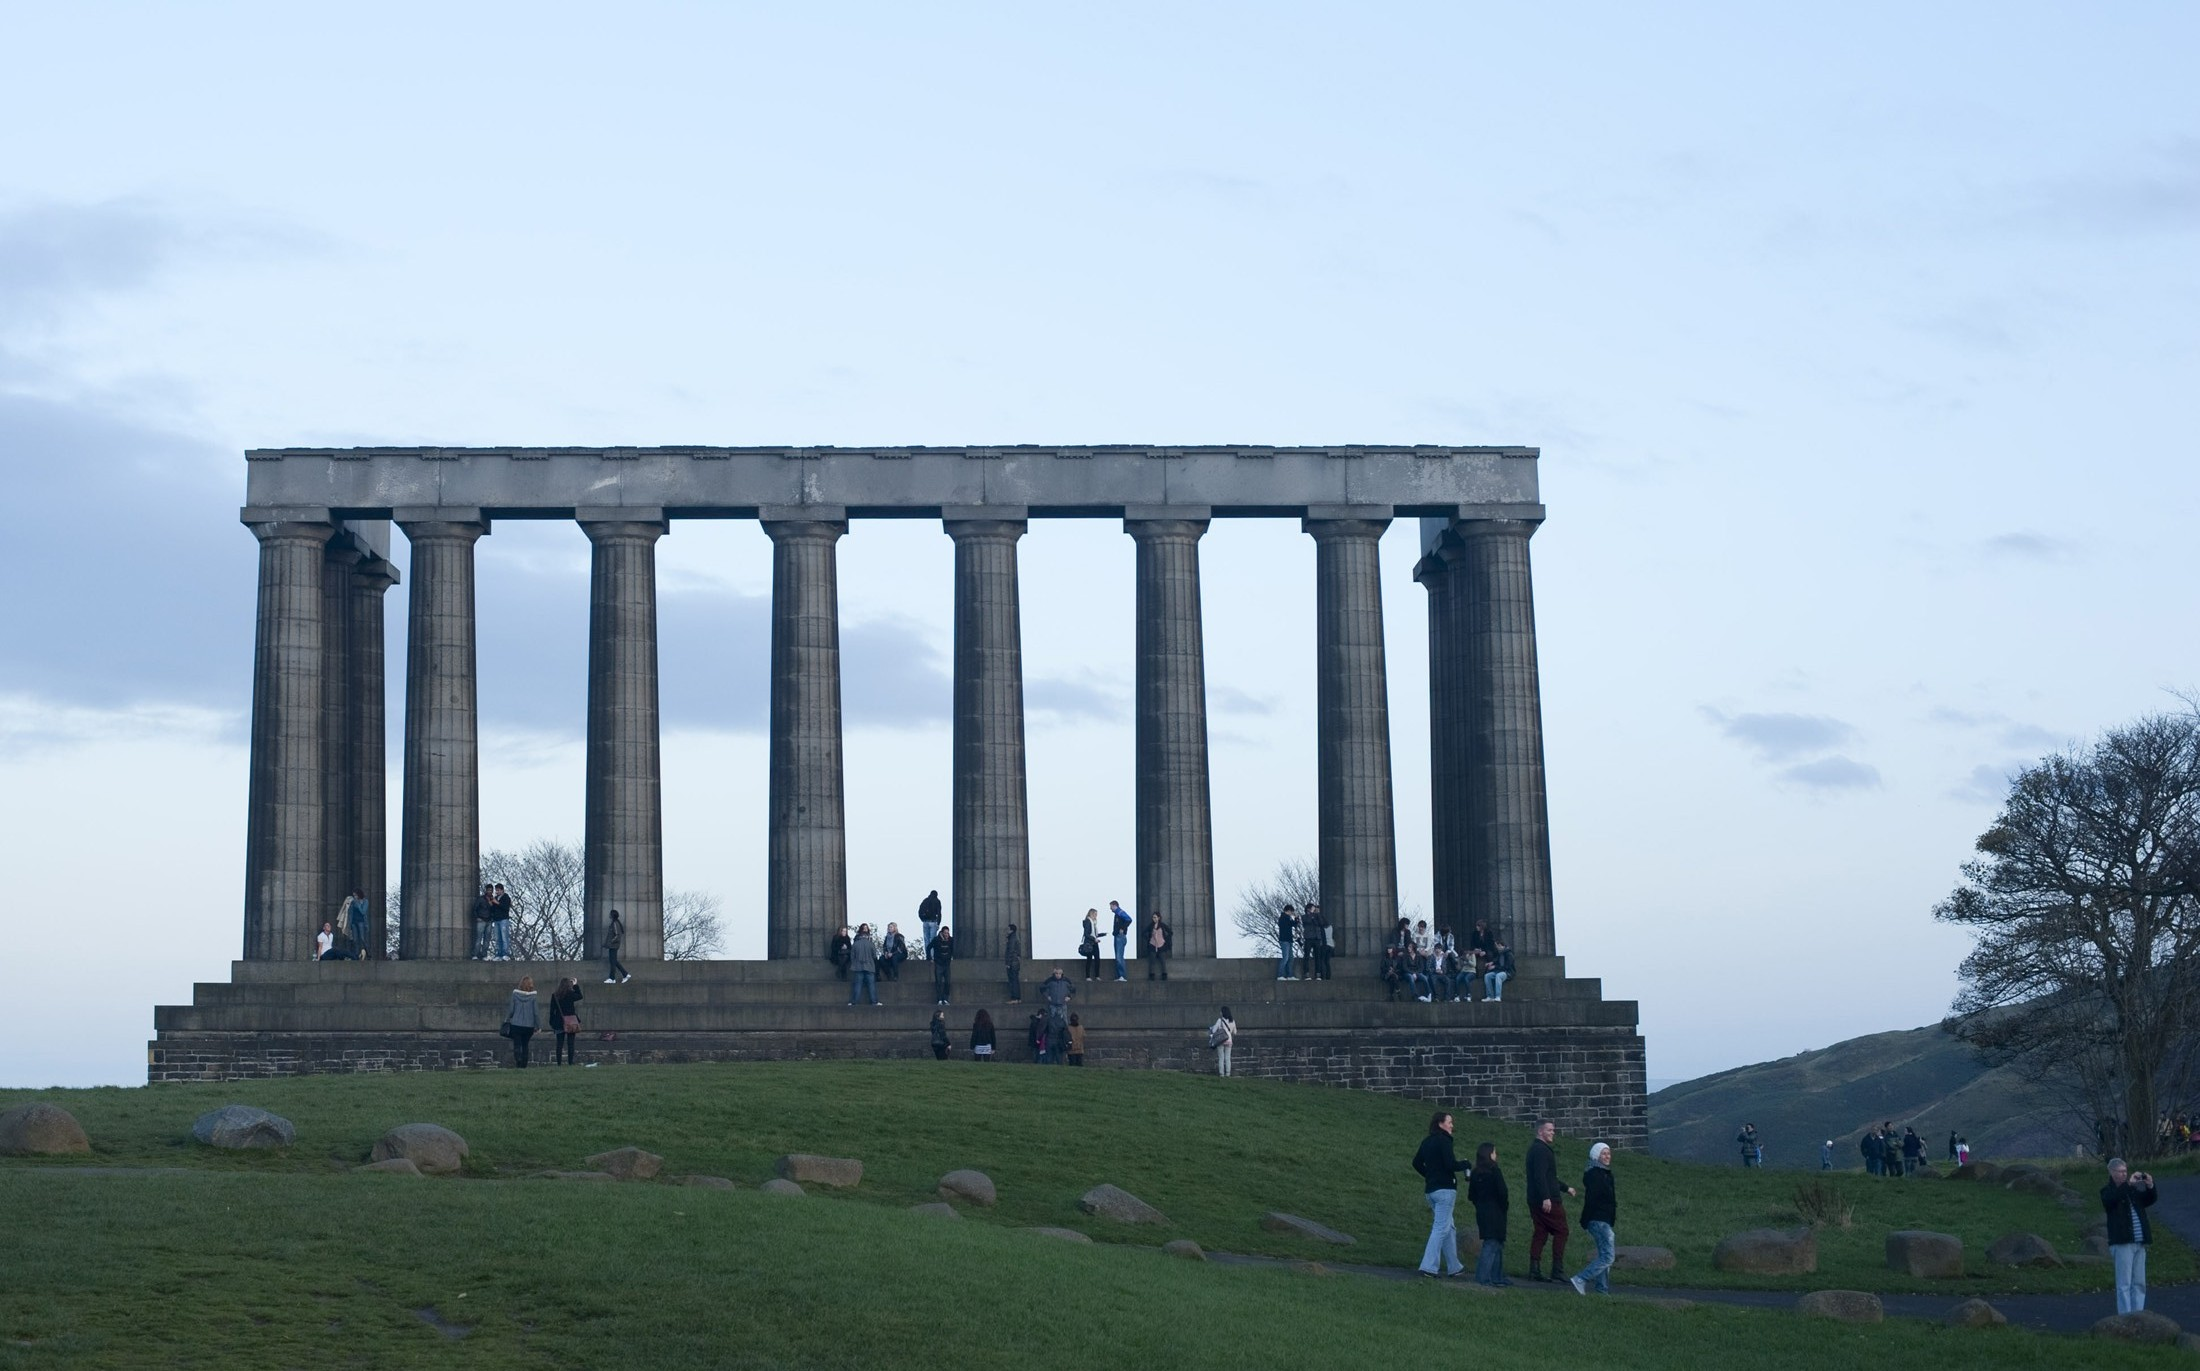 Edinburgh's Folly, the unfinished collonade of the National Monument on top of carlton hill, Edinburgh, Scotland